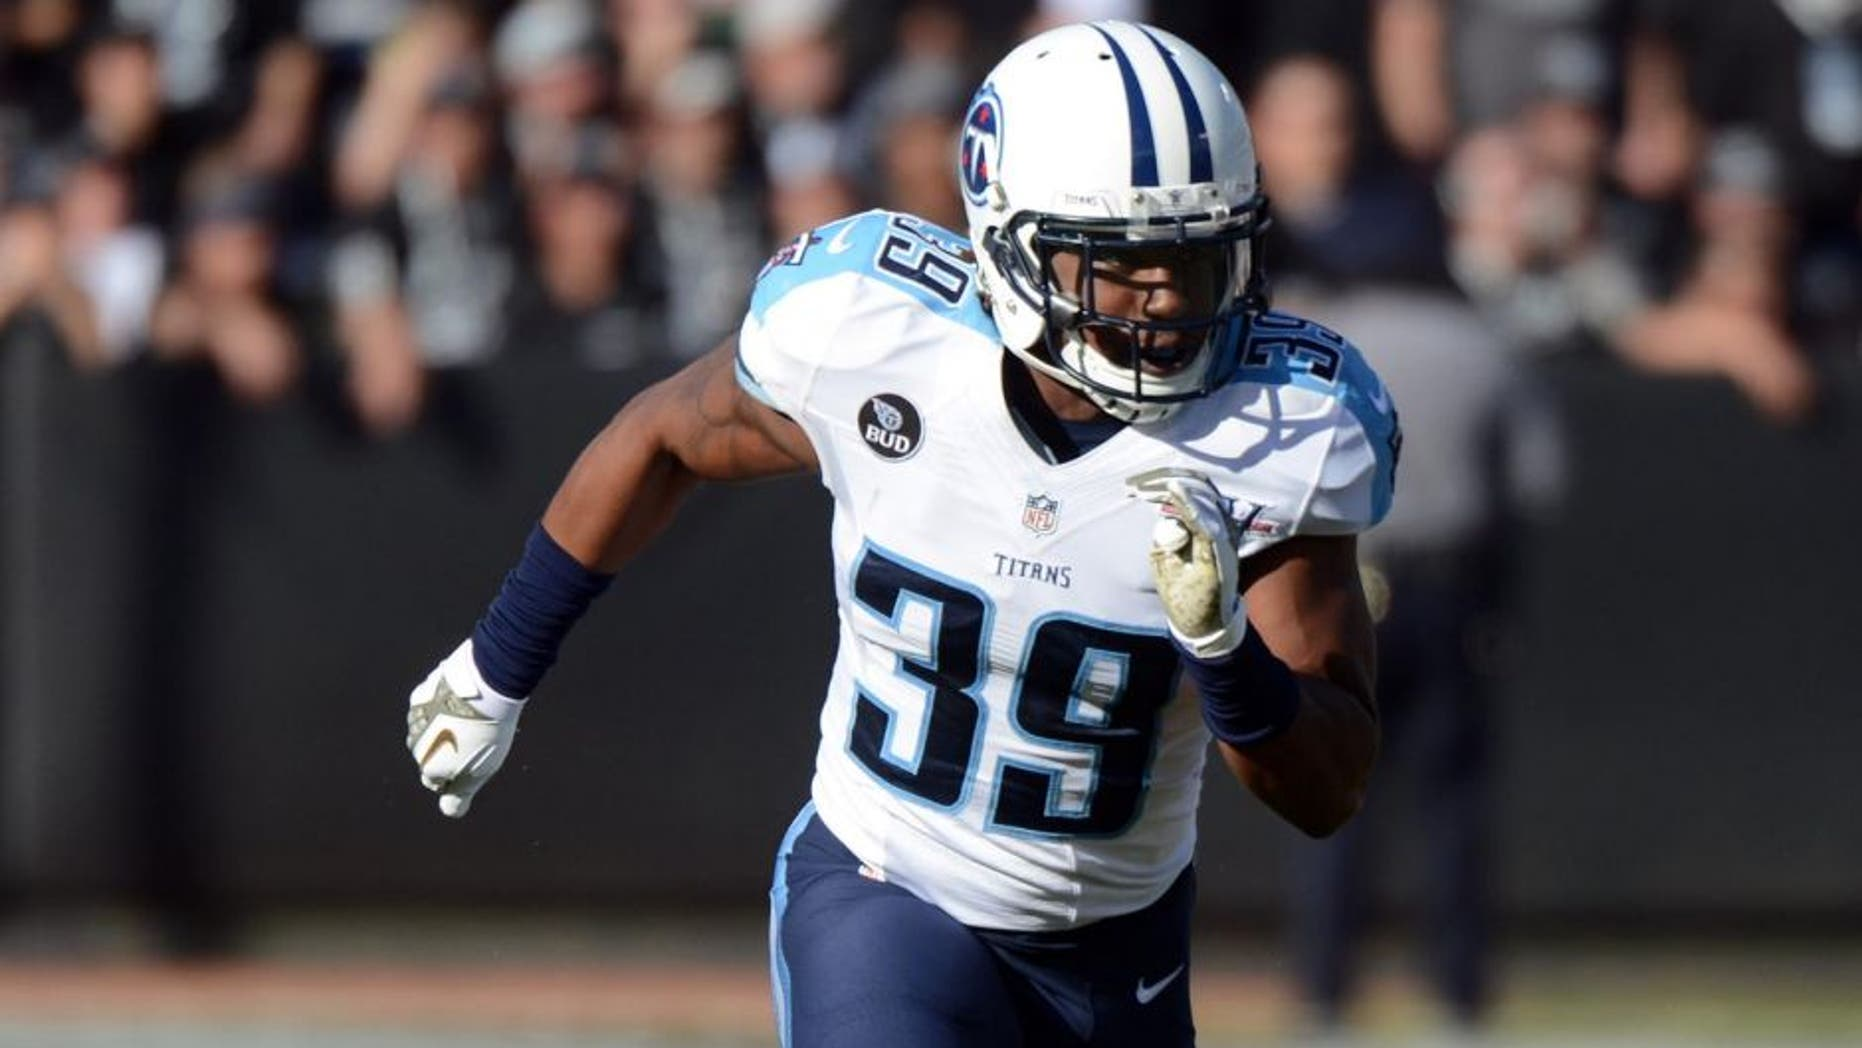 November 24, 2013; Oakland, CA, USA; Tennessee Titans strong safety Daimion Stafford (39) runs during the second quarter against the Oakland Raiders at O.co Coliseum. The Titans defeated the Raiders 23-19. Mandatory Credit: Kyle Terada-USA TODAY Sports